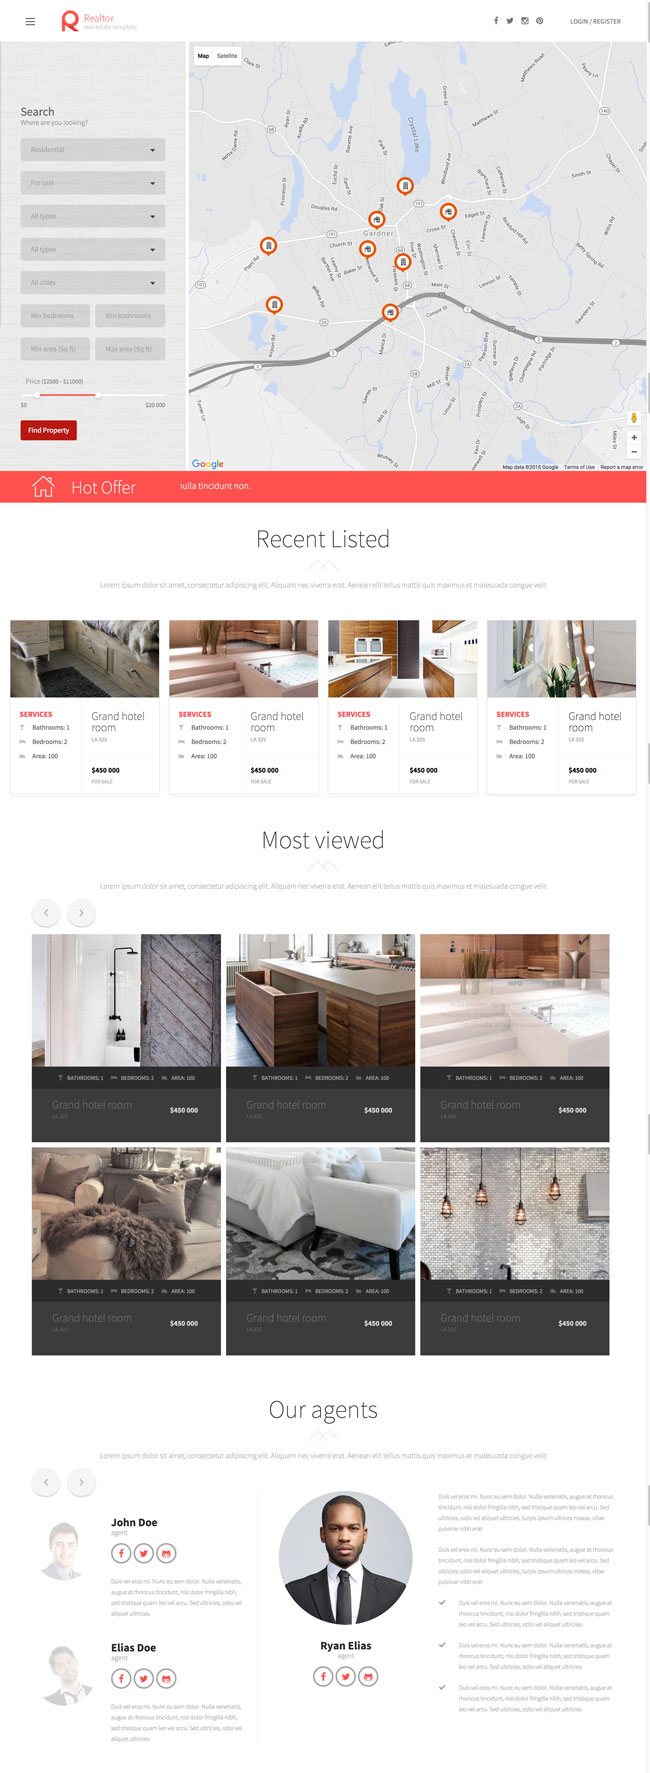 Realtor-A-Real-Estate-Template